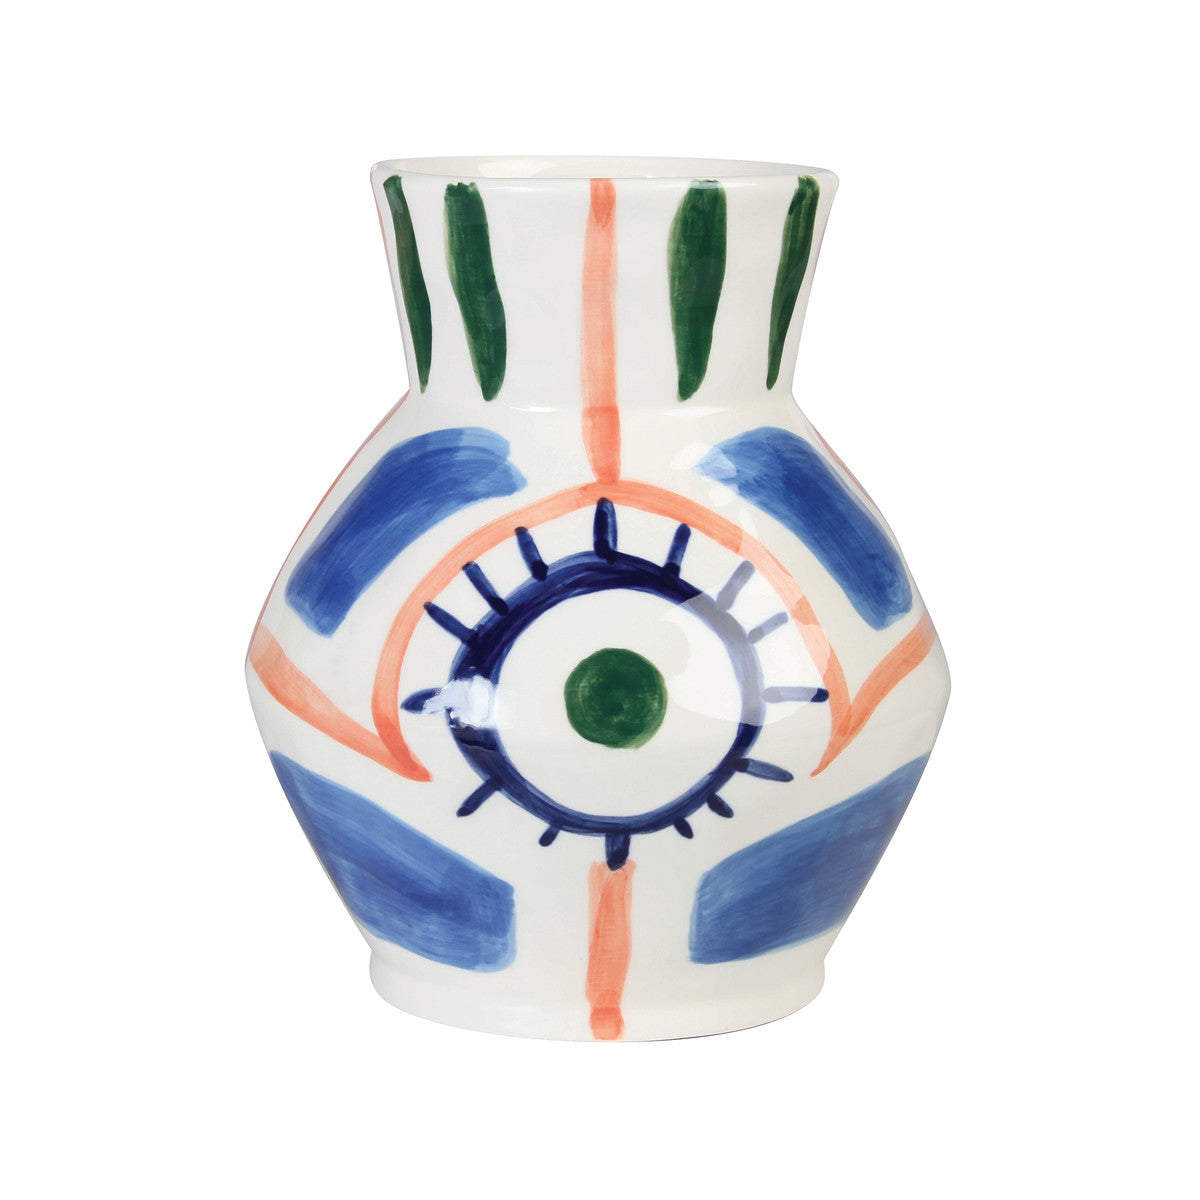 &Klevering Baariq Vase in tones of blue, coral and green